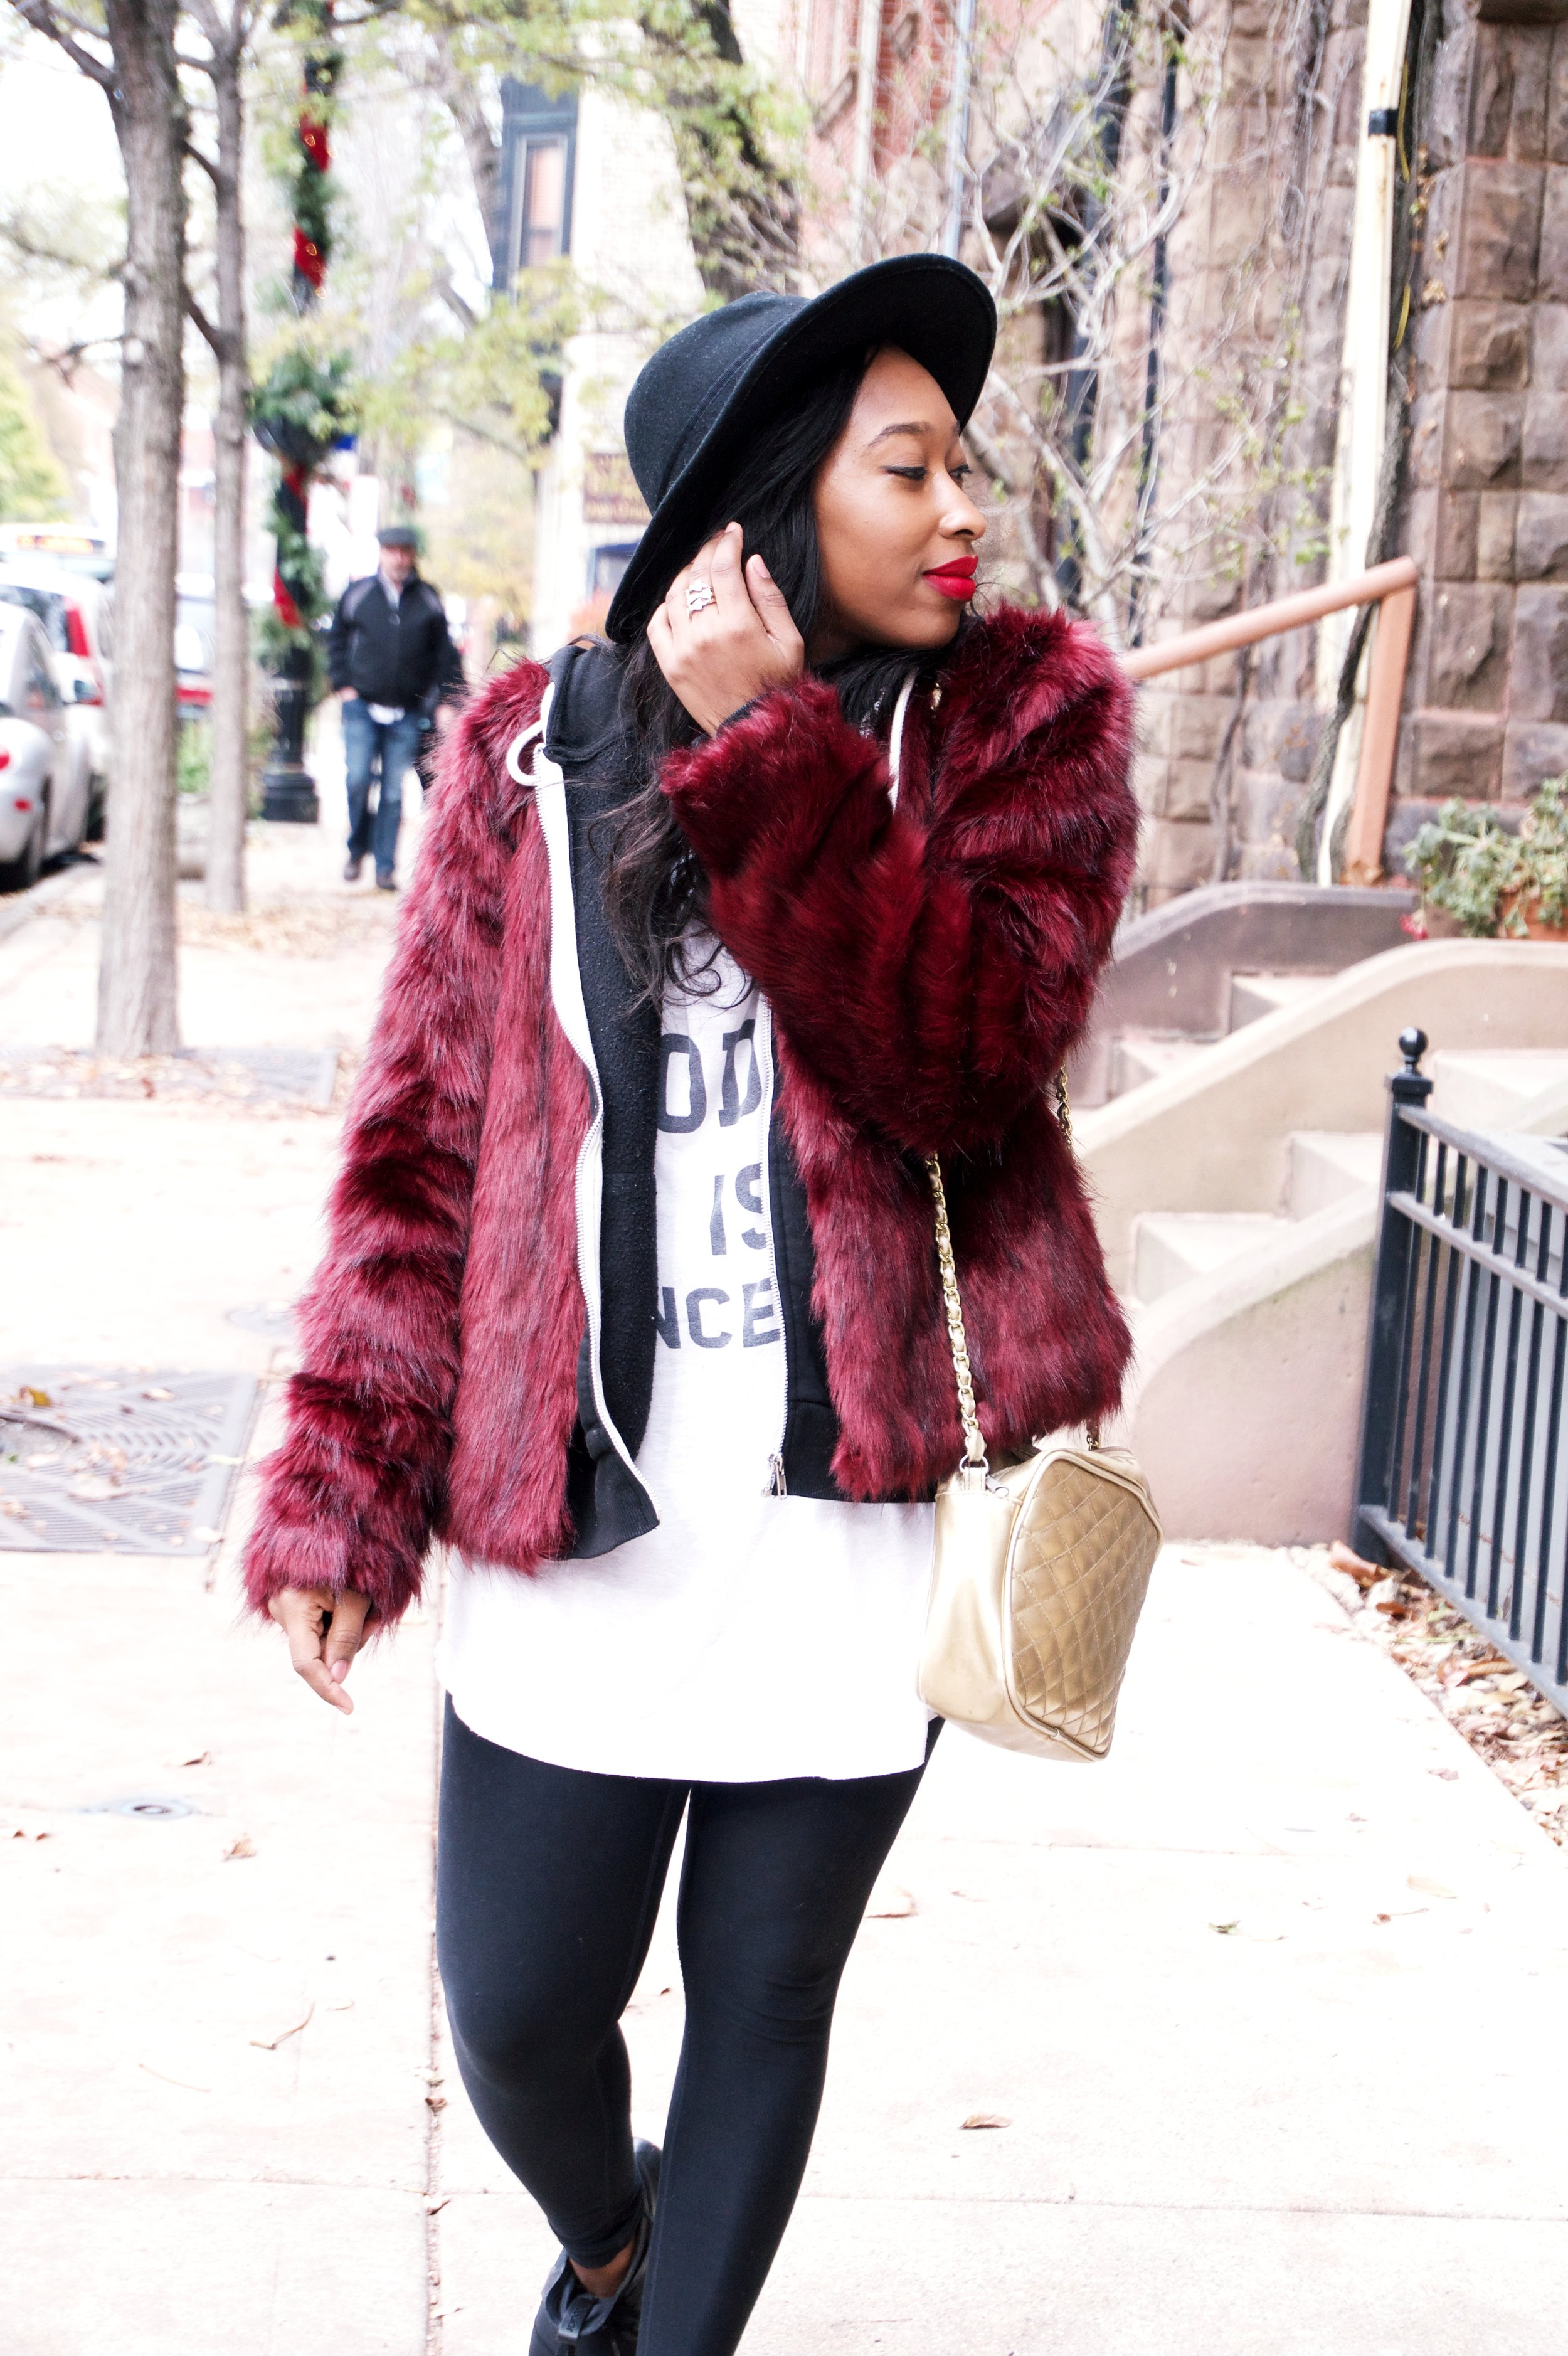 Casual fur outfit